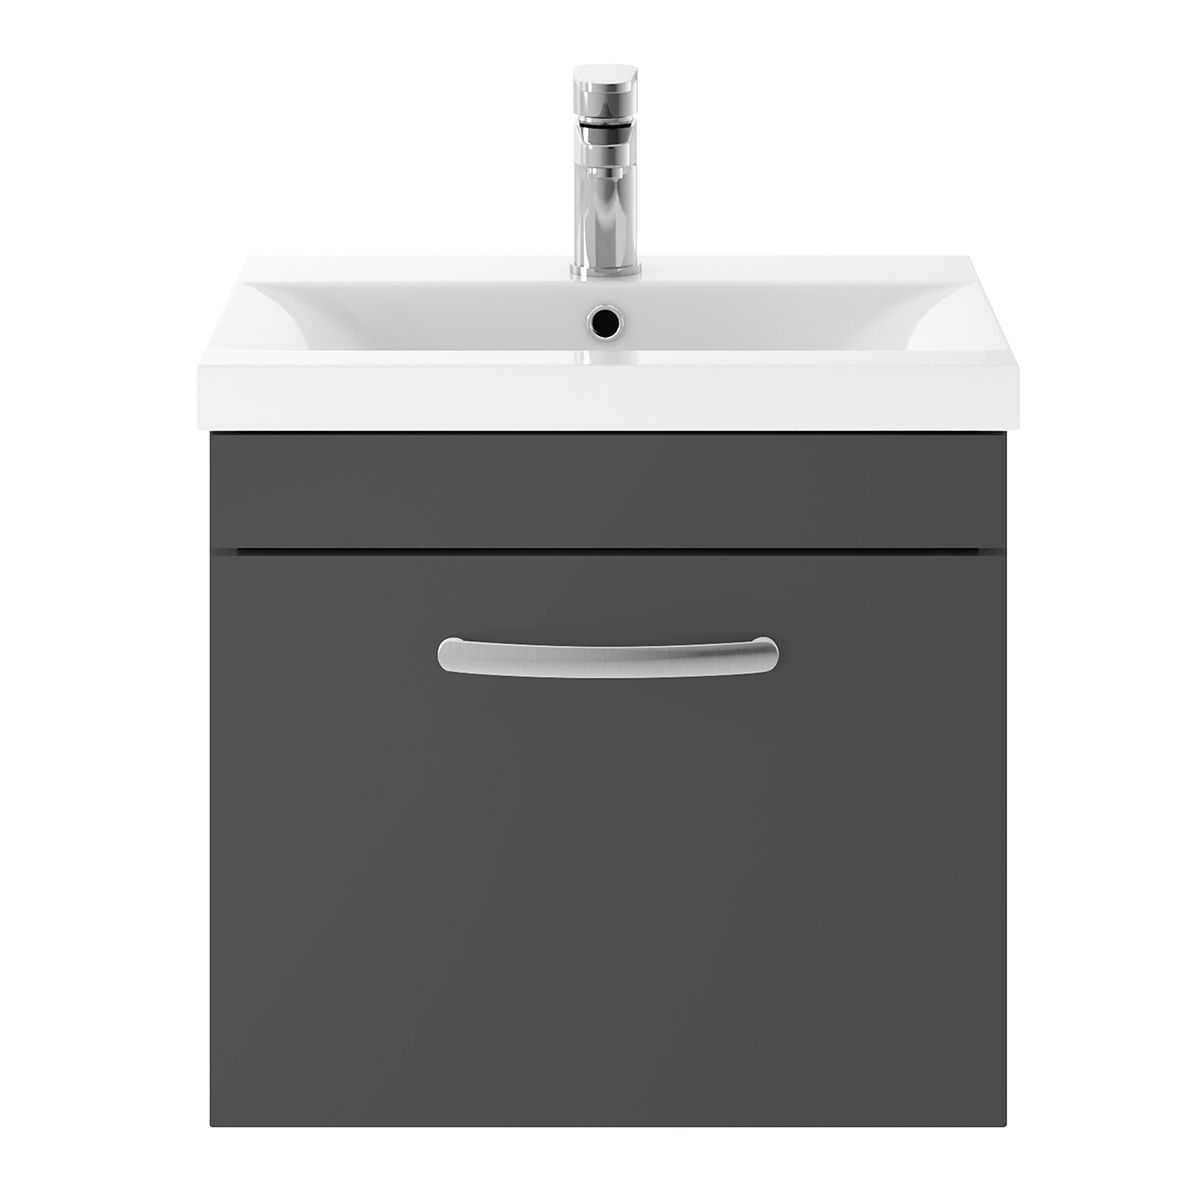 Nuie Athena Gloss Grey 1 Drawer Wall Hung Vanity Unit 500mm with Mid Edge Basin